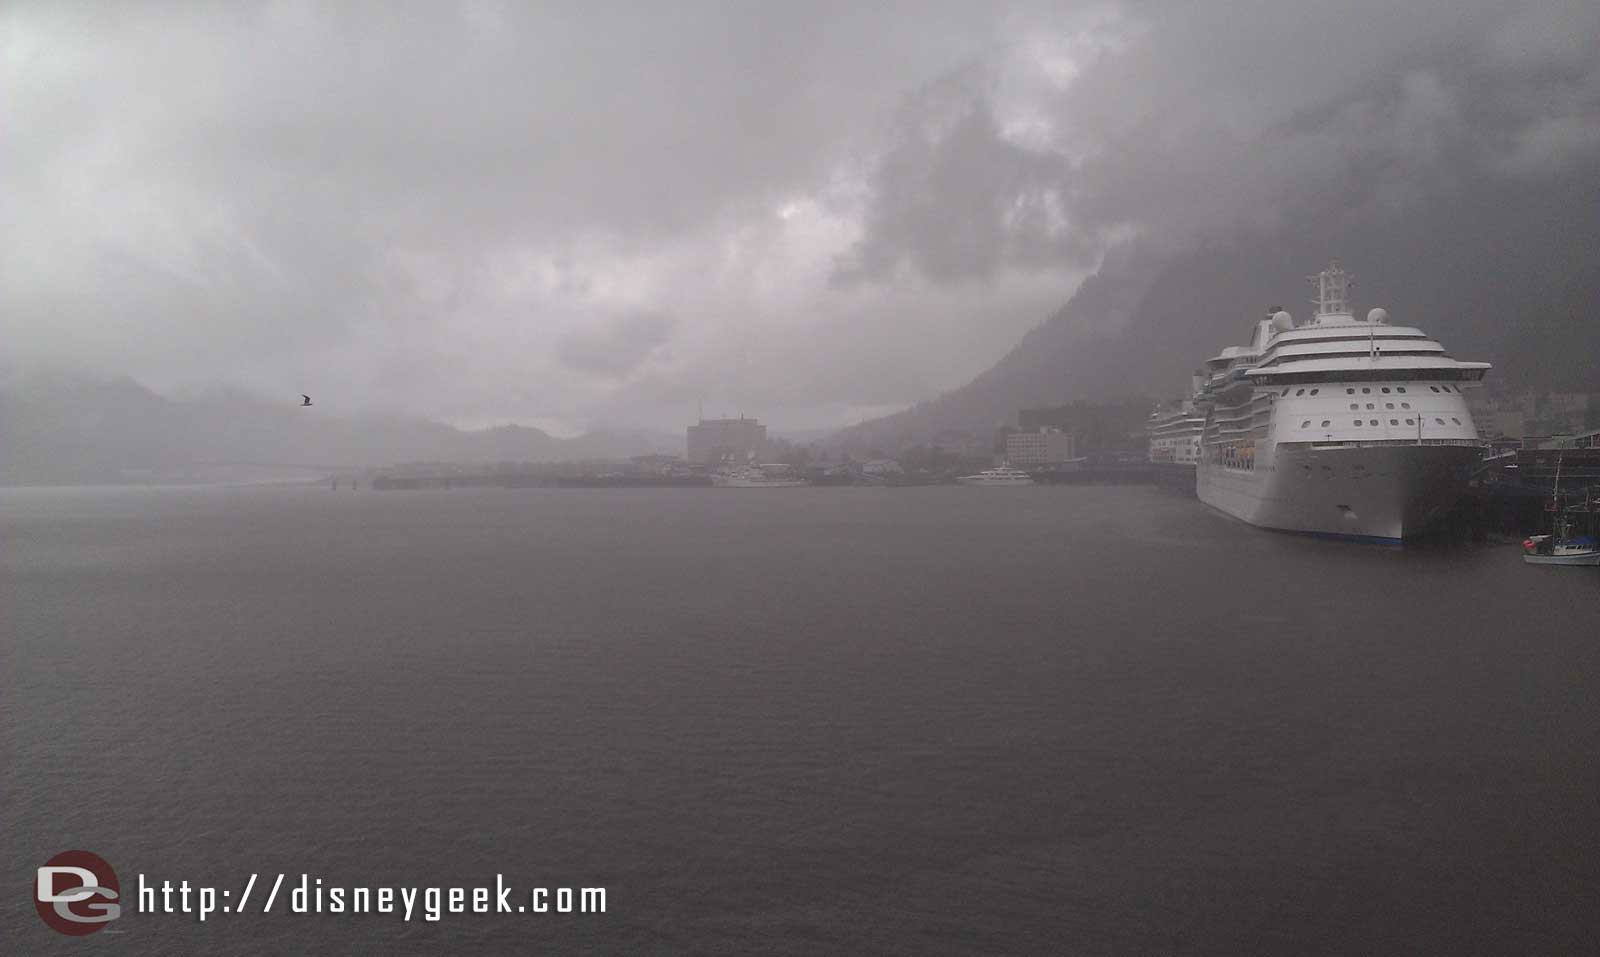 The weather has turned rainy in Juneau glad I went on an early excursion #Alaska